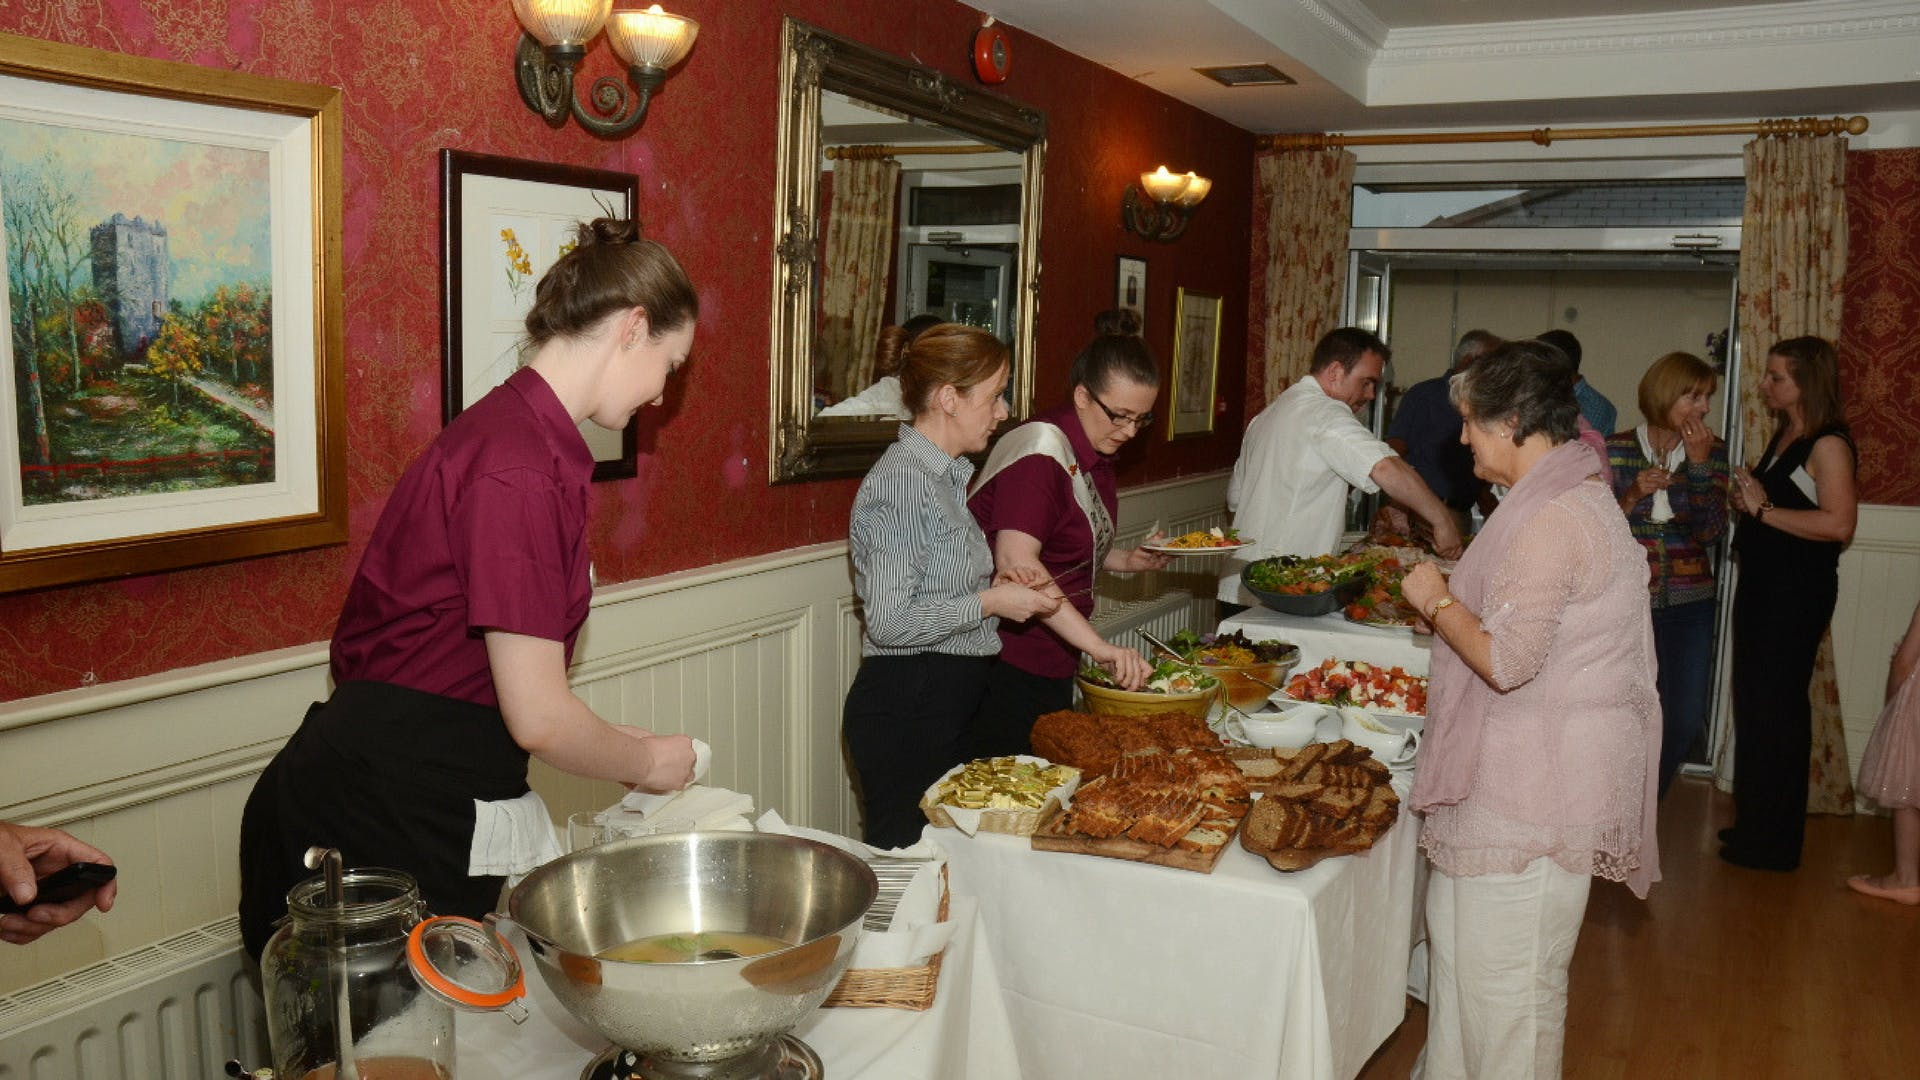 Event catering at Gleesons Restaurant & Rooms, Roscommon